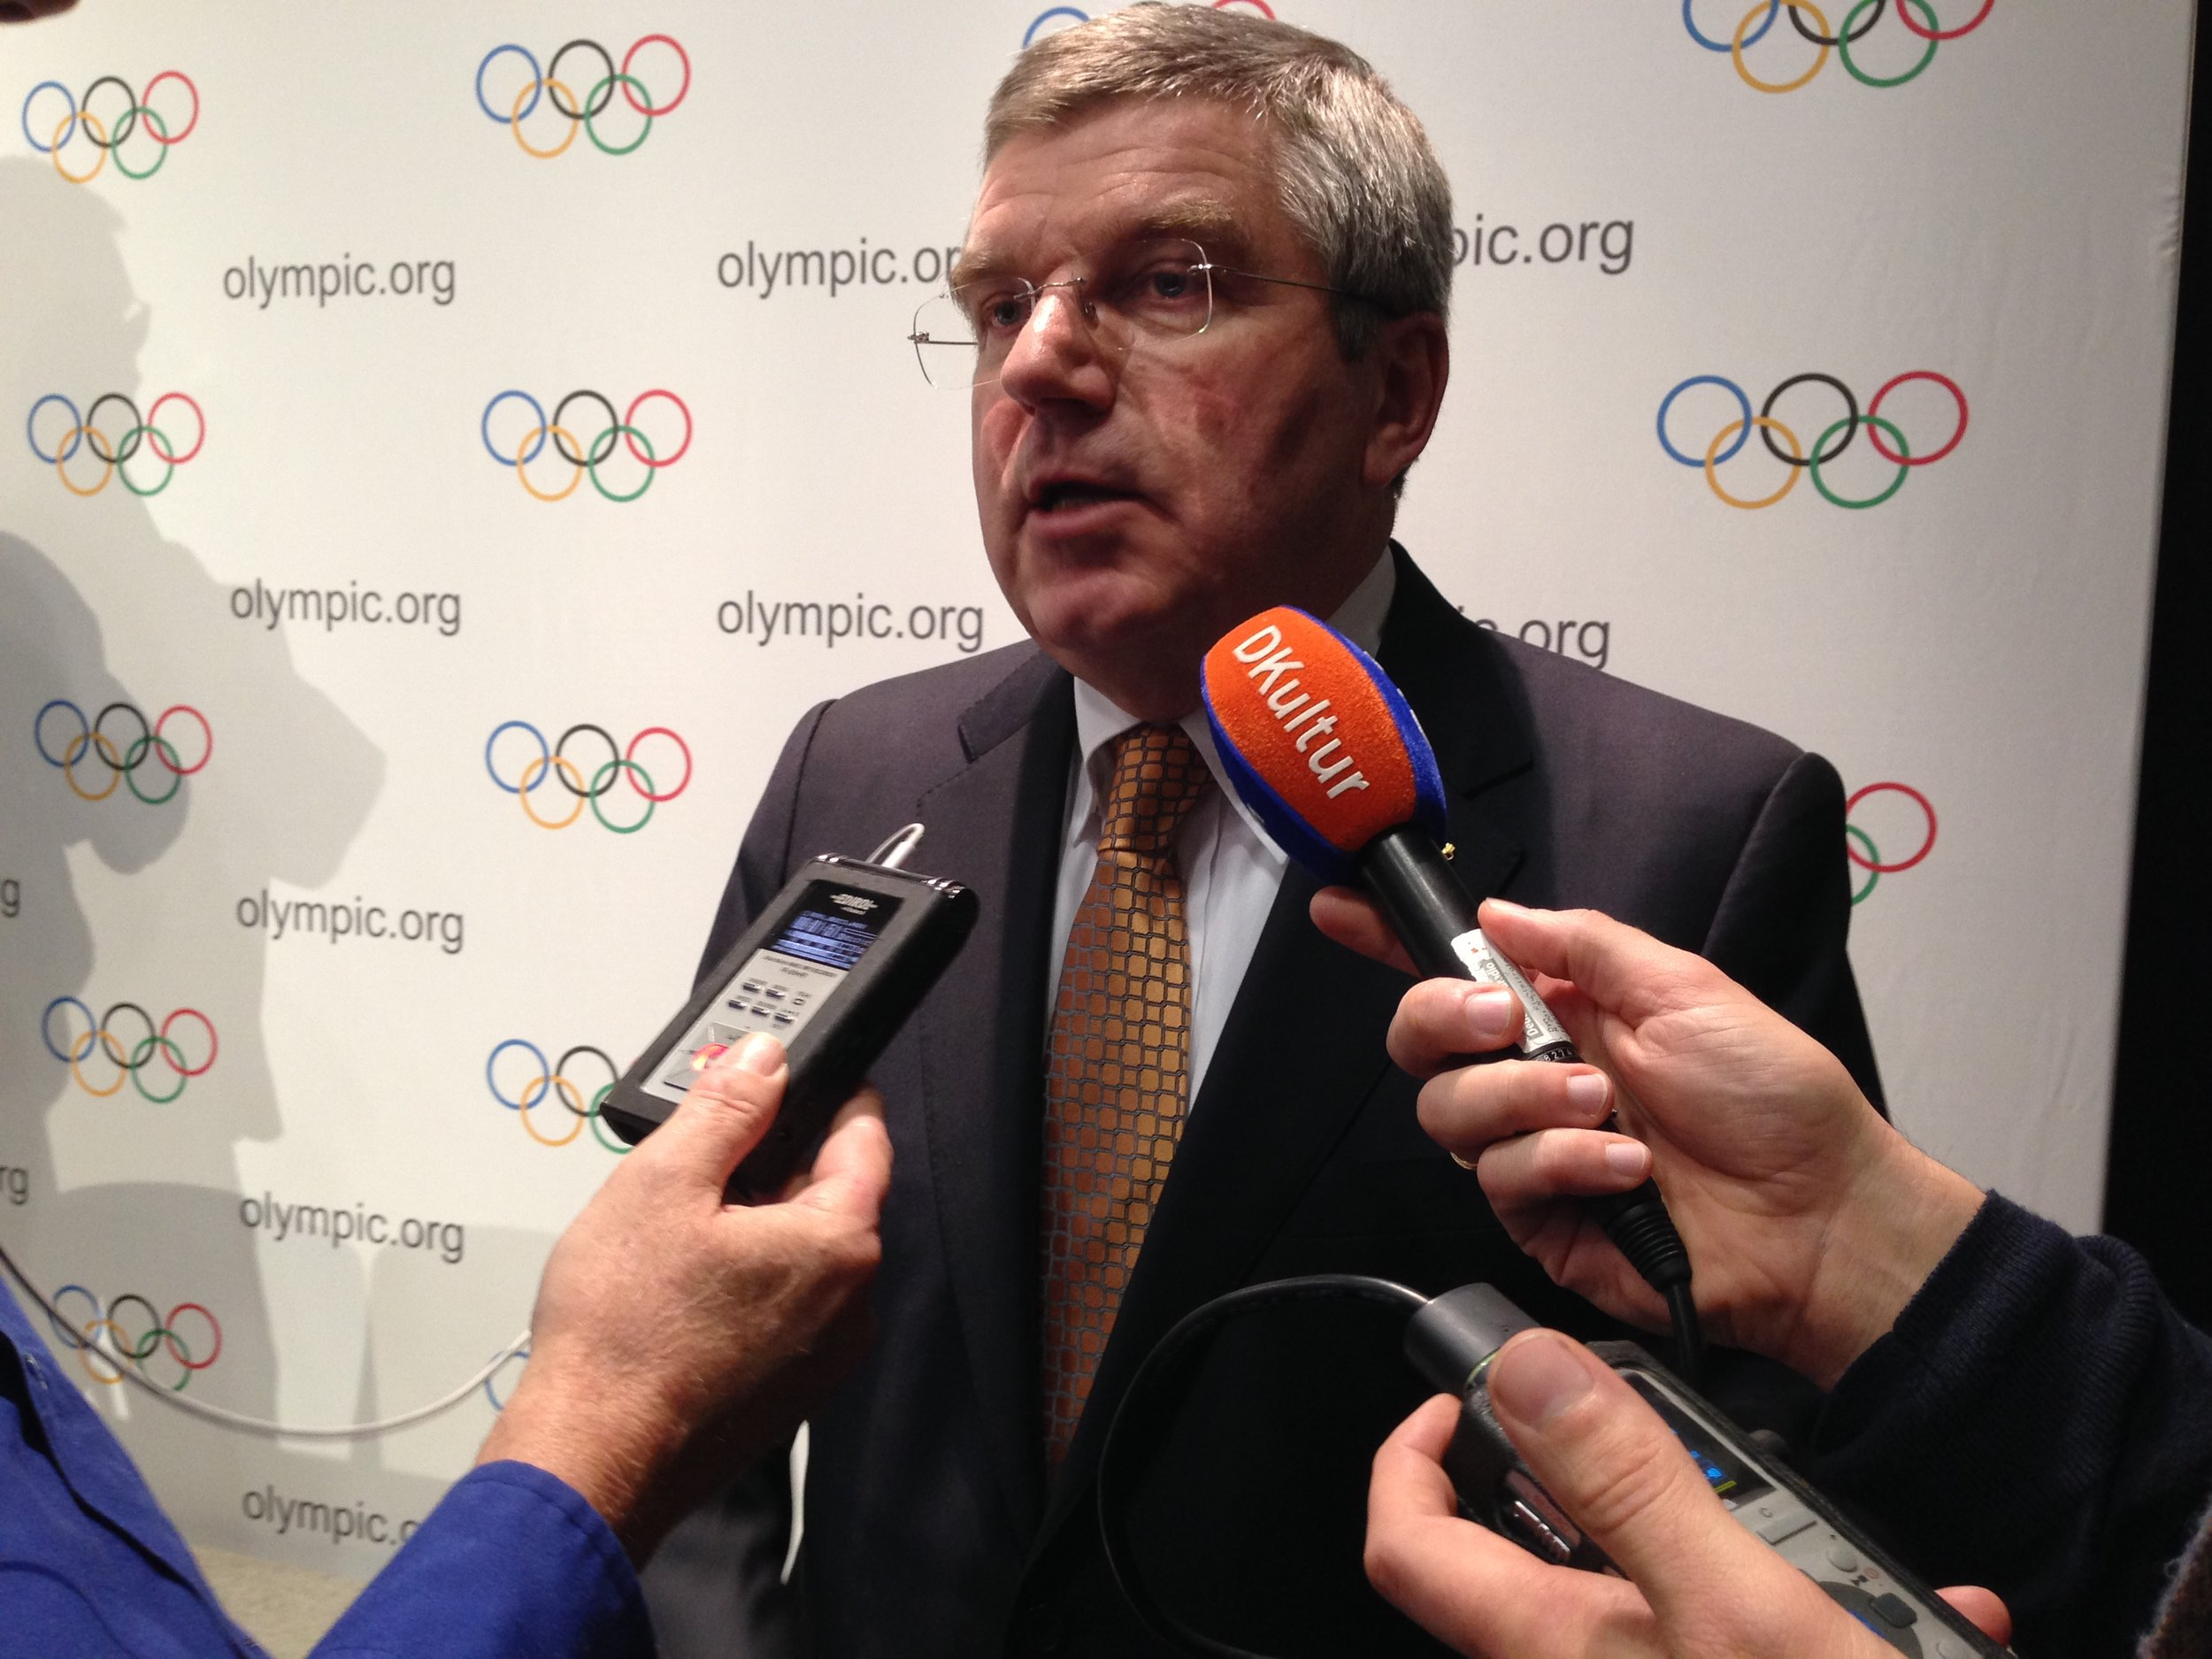 IOC president Thomas Bach at a news conference after chairing his first executive board meeting